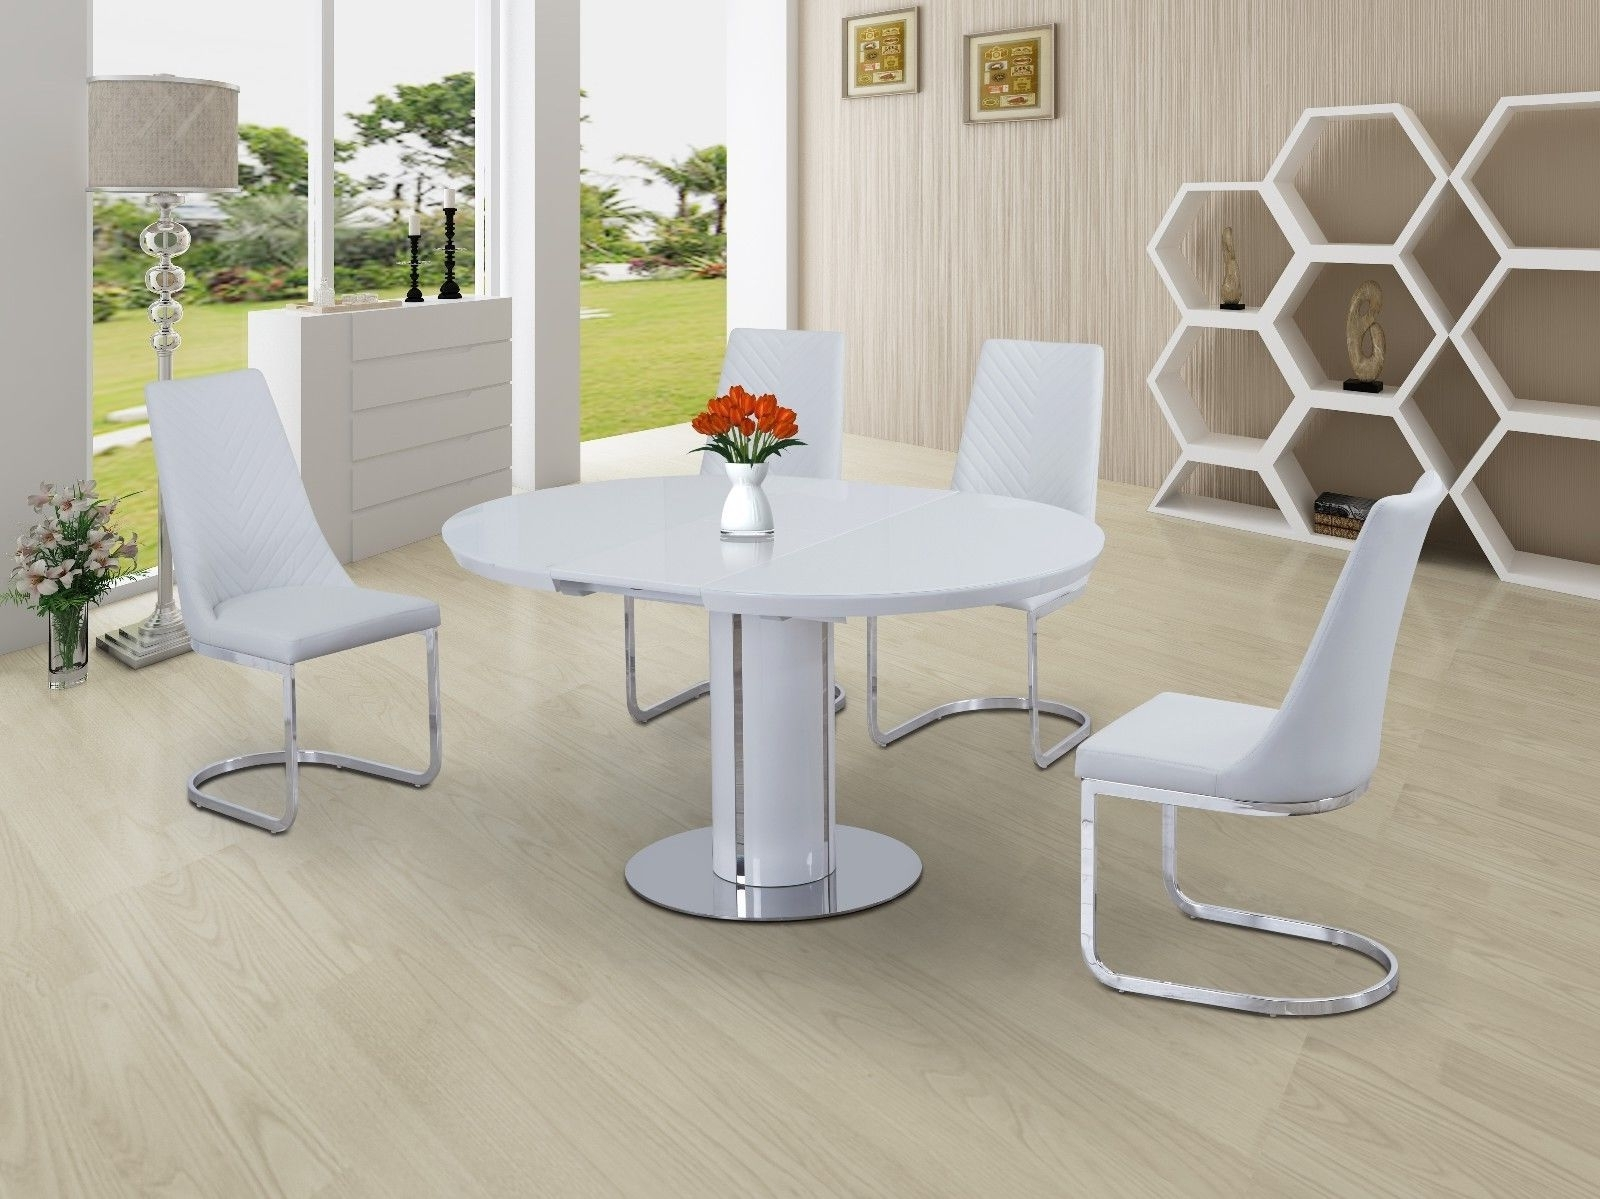 Round White High Gloss Dining Table Extendable With Chairs Option Throughout Well Liked Round White Extendable Dining Tables (View 13 of 25)